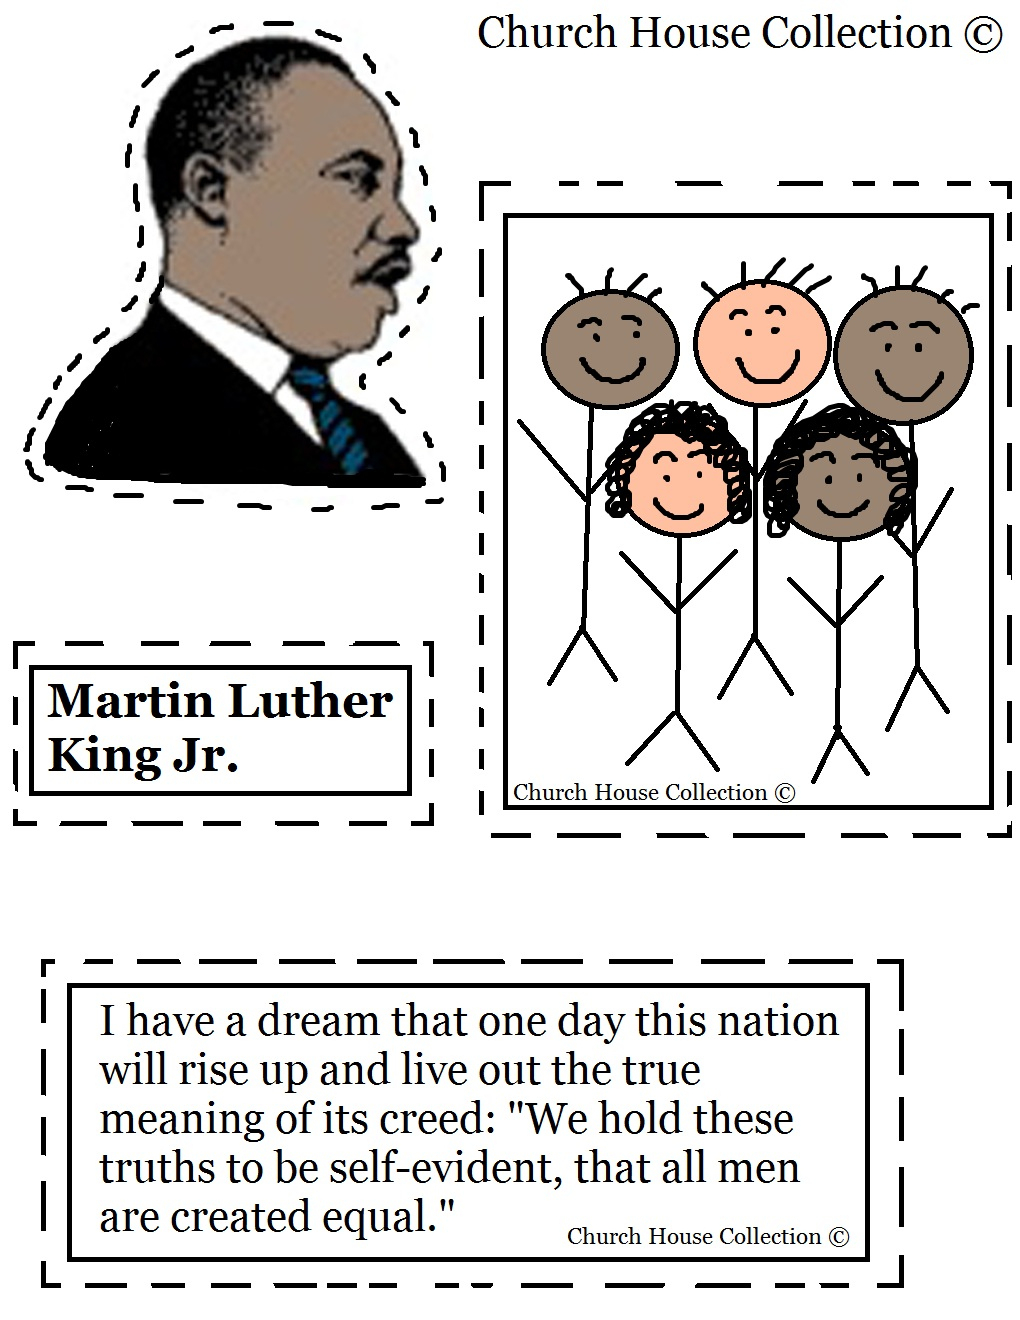 Coloring Pages ~ Free Printable Coloringes Of Martin Luther King Jr - Free Printable Martin Luther King Jr Worksheets For Kindergarten